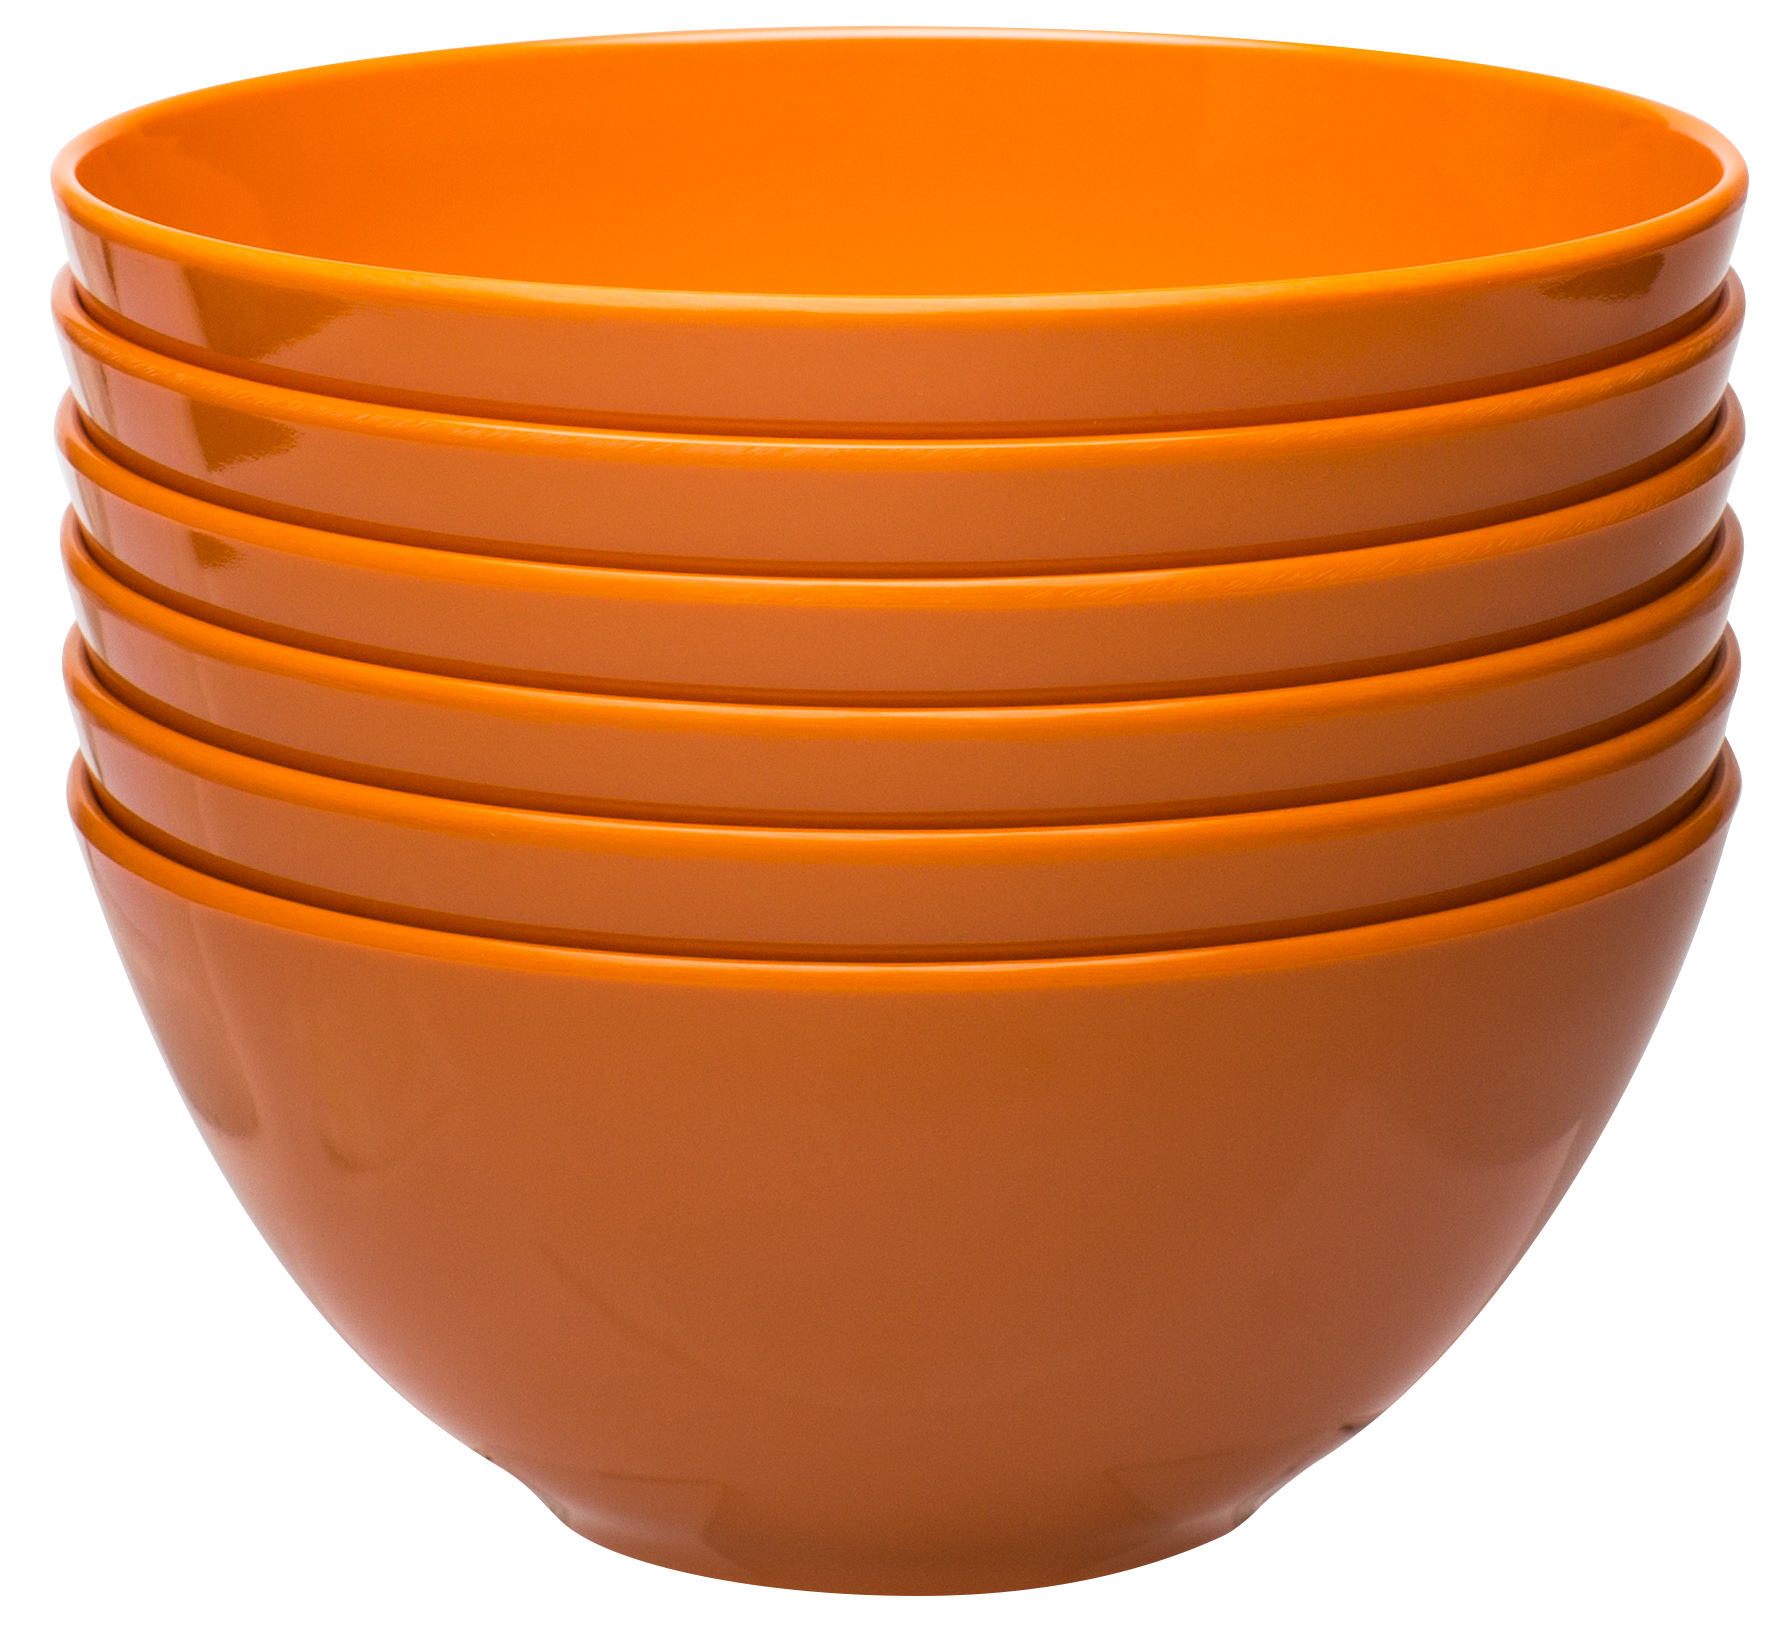 Ella 30 ounce Soup Bowl, Orange, 6-piece set slideshow image 2